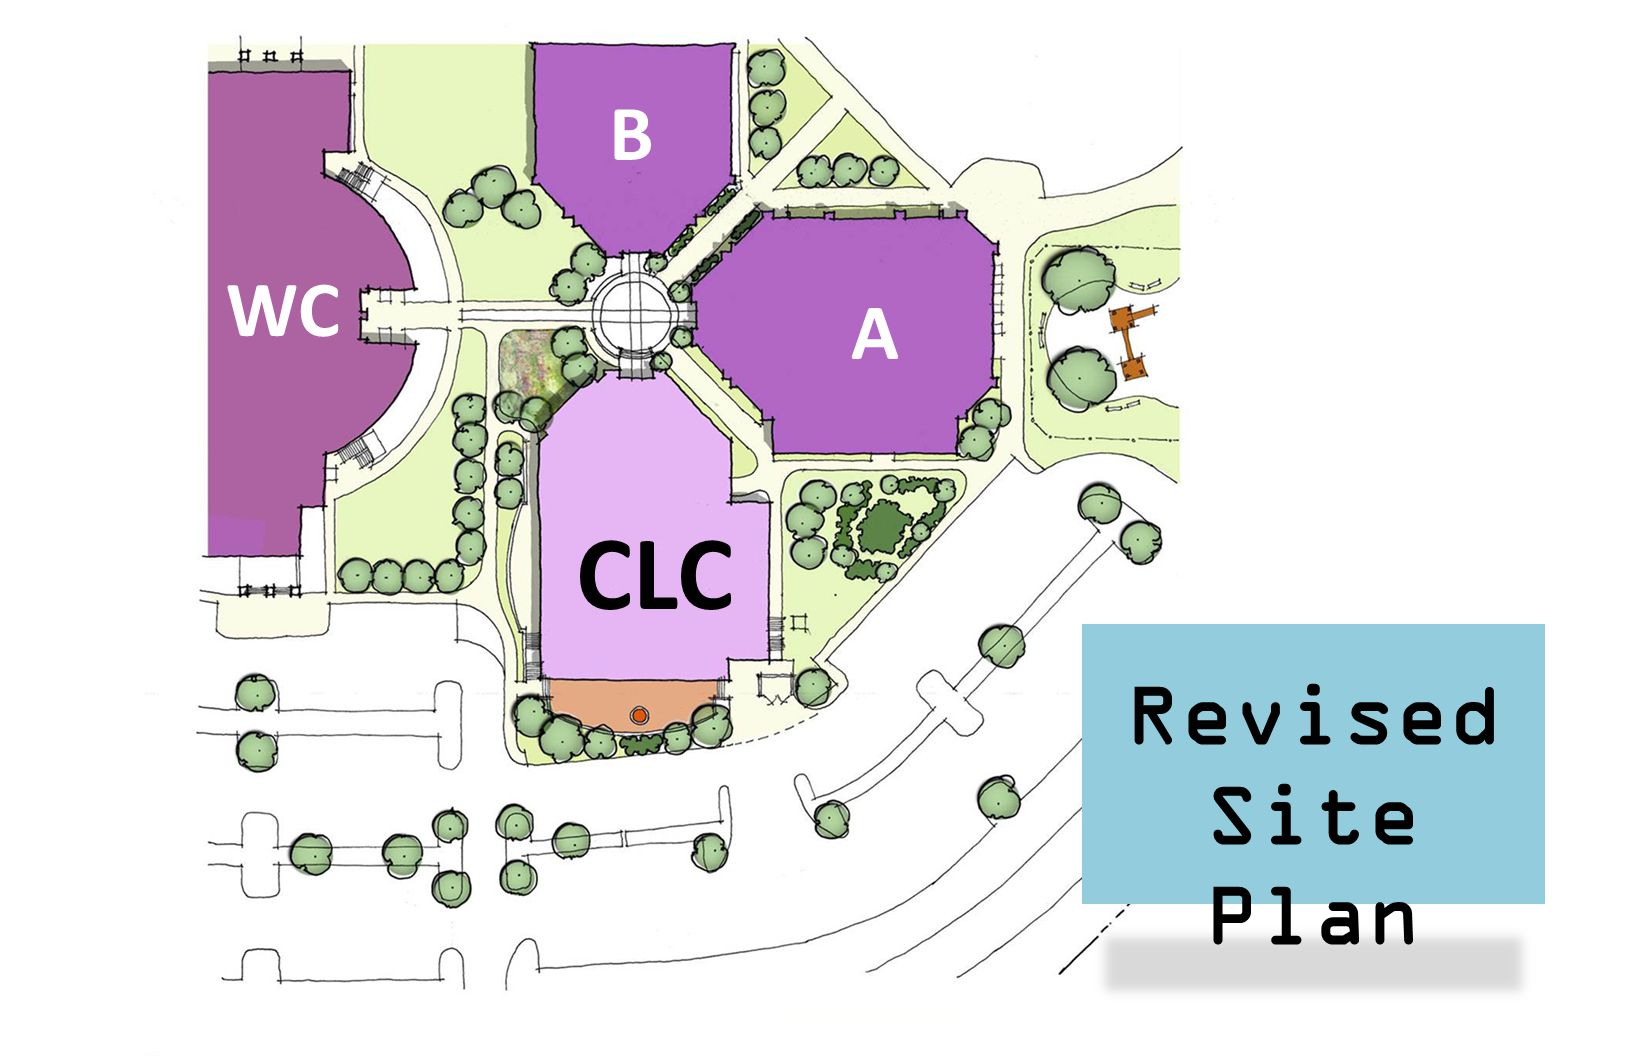 Revised Site Plan CLC A B WC